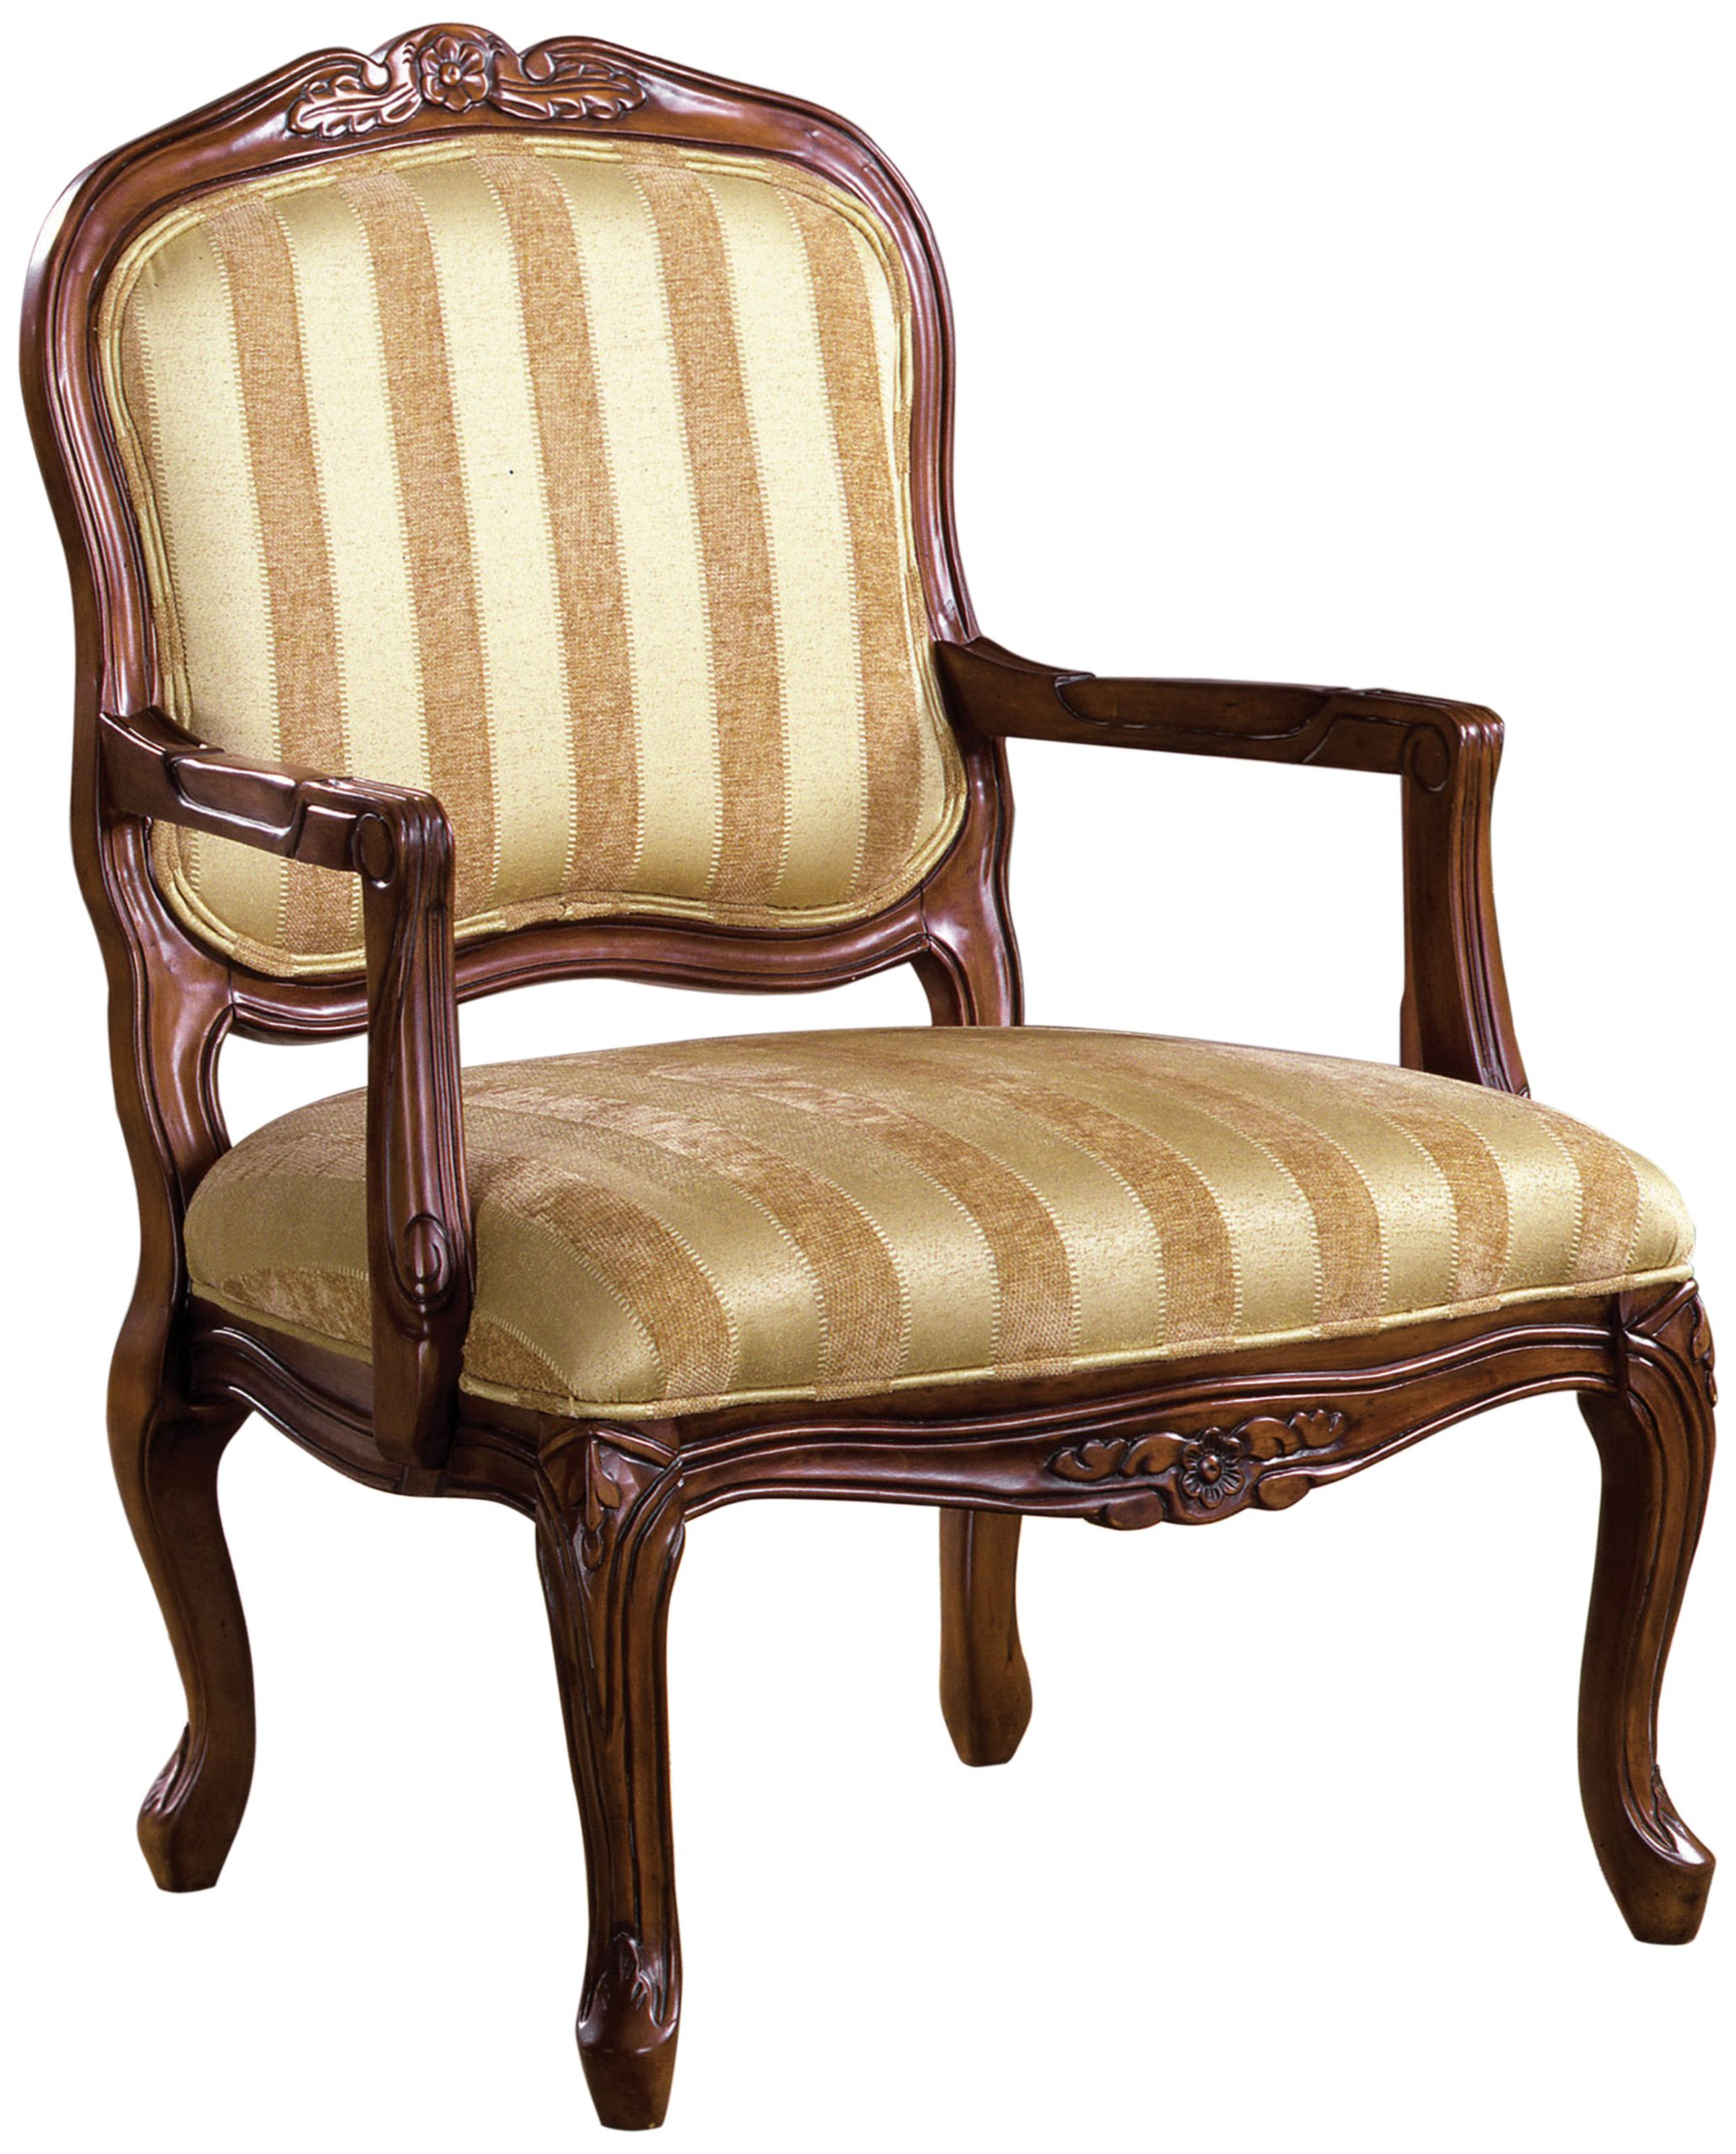 Furniture of America Solimar Arm Chair, Antique Oak by Furniture of America